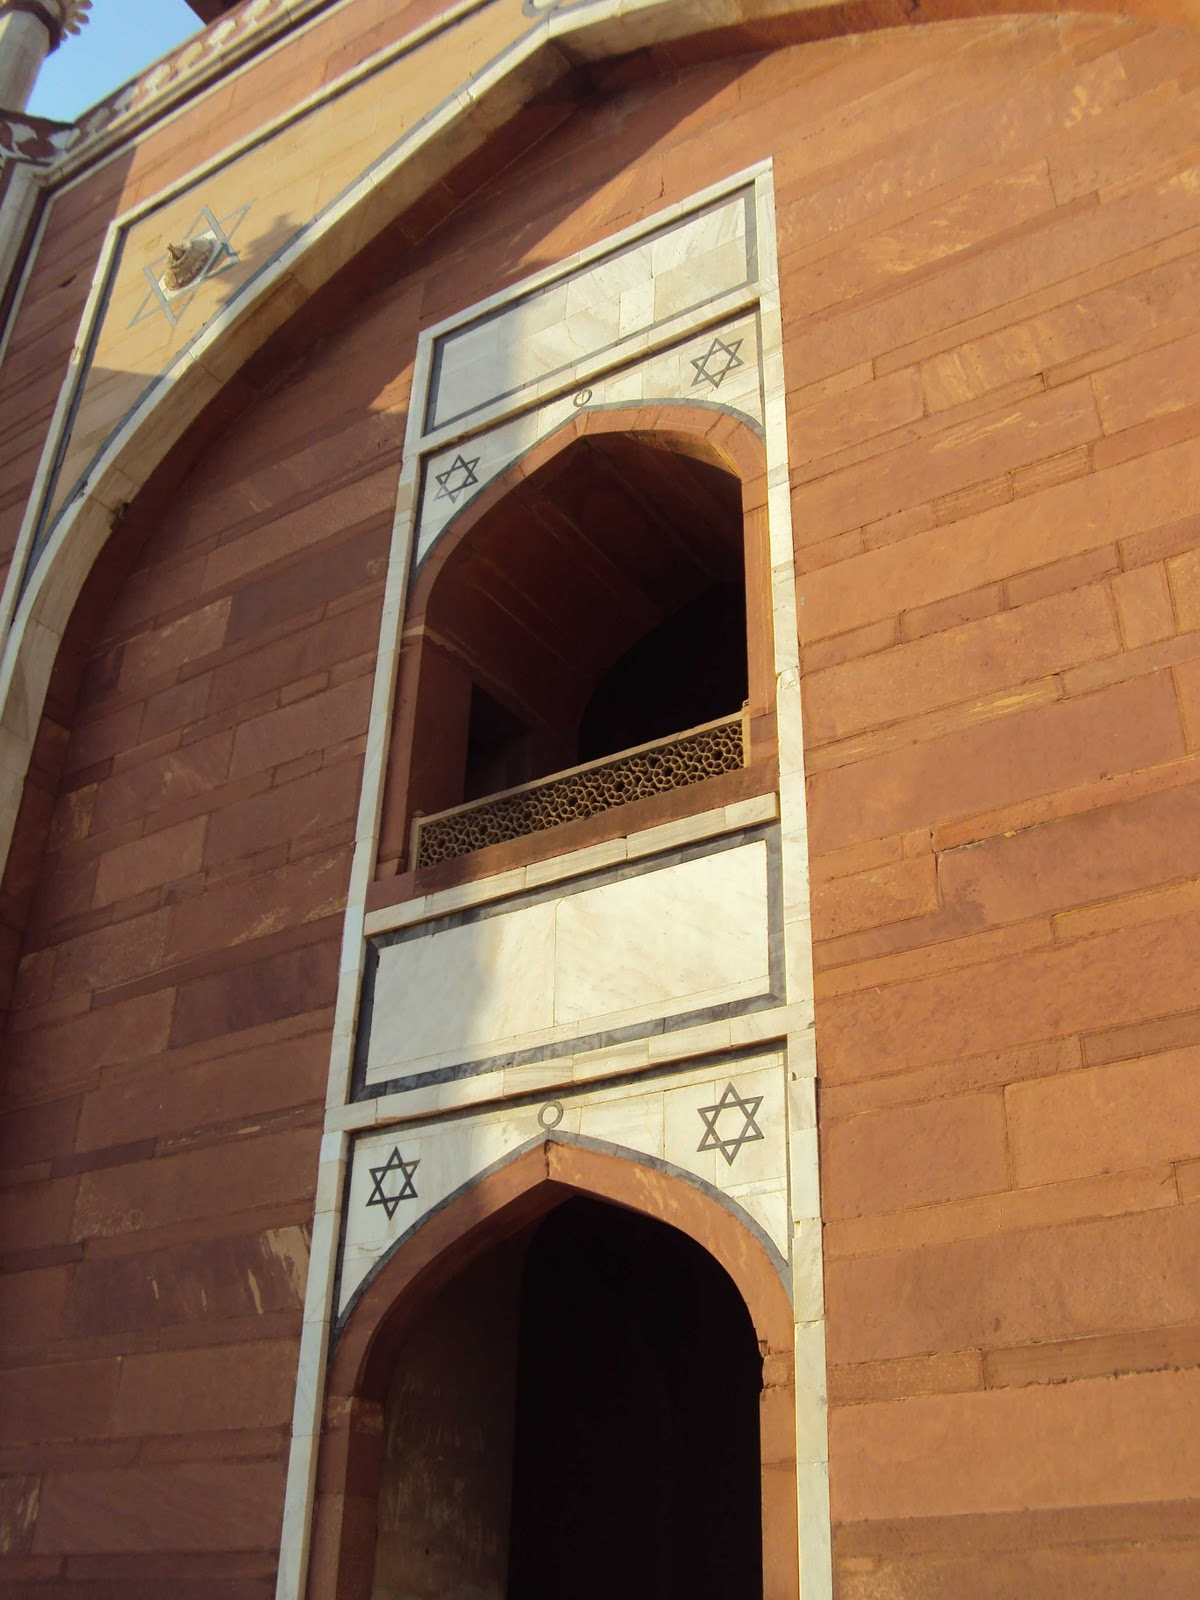 Architecture student 39 s corner humayun 39 s tomb delhi for Best architecture companies in india